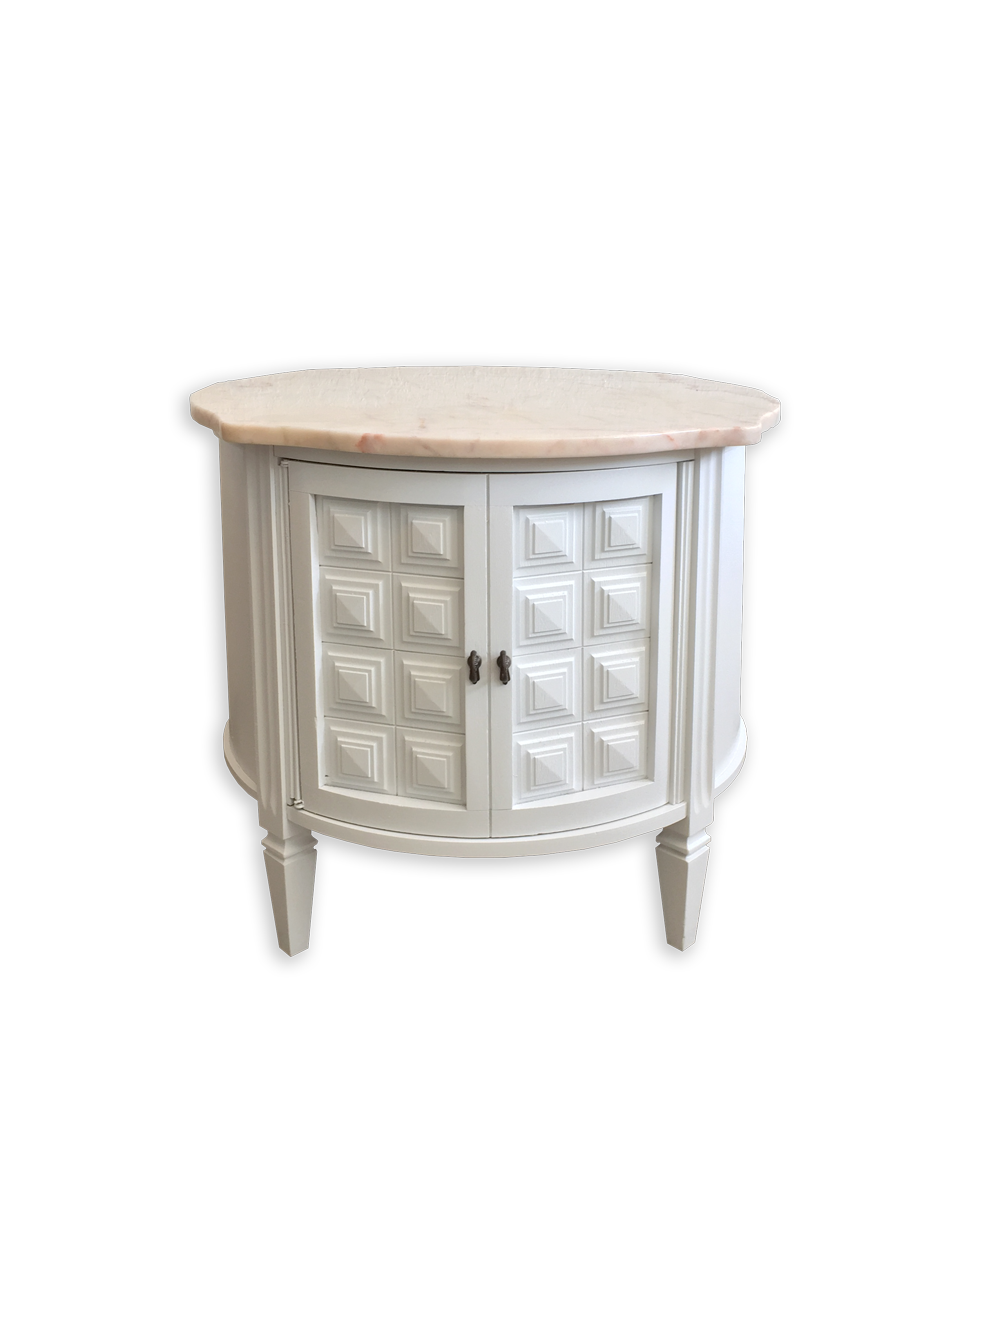 Vintage Round End Table With Cabinet And Rose Marble Top